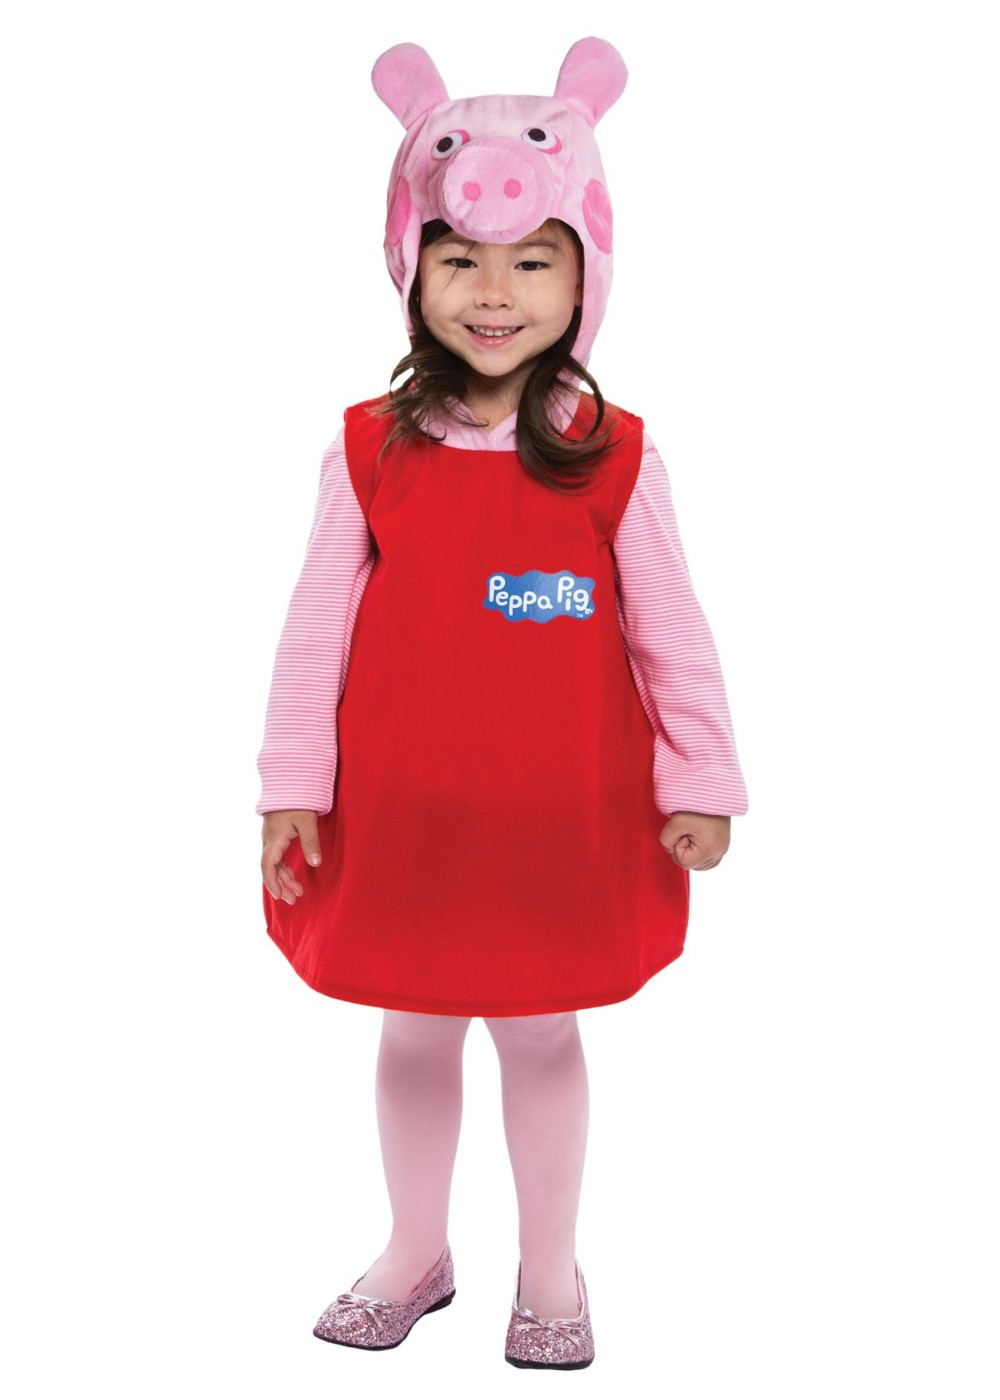 Most Design Ideas Peppa Pig Scary Front View Pictures And